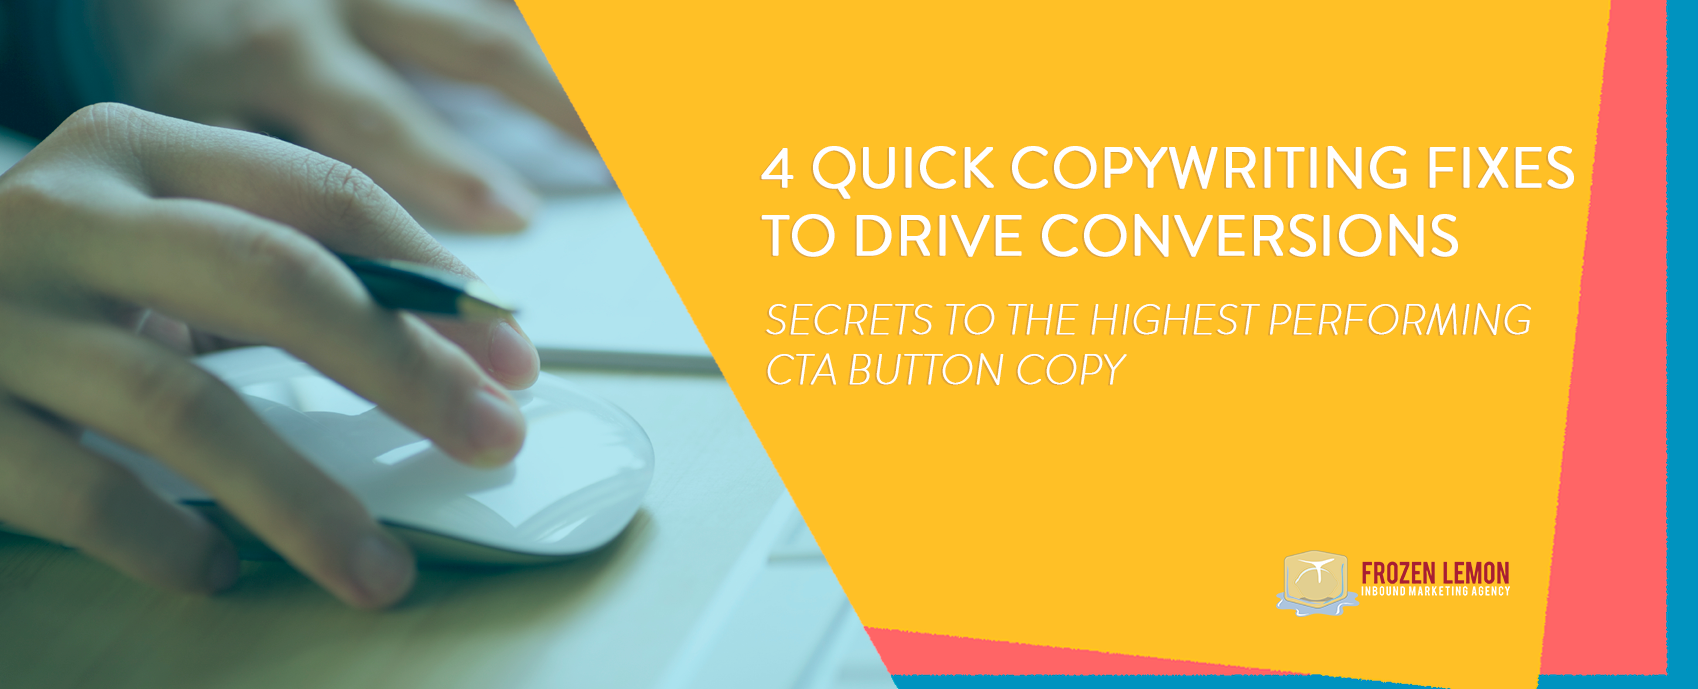 4 Quick Copywriting Tips To Drive Conversions